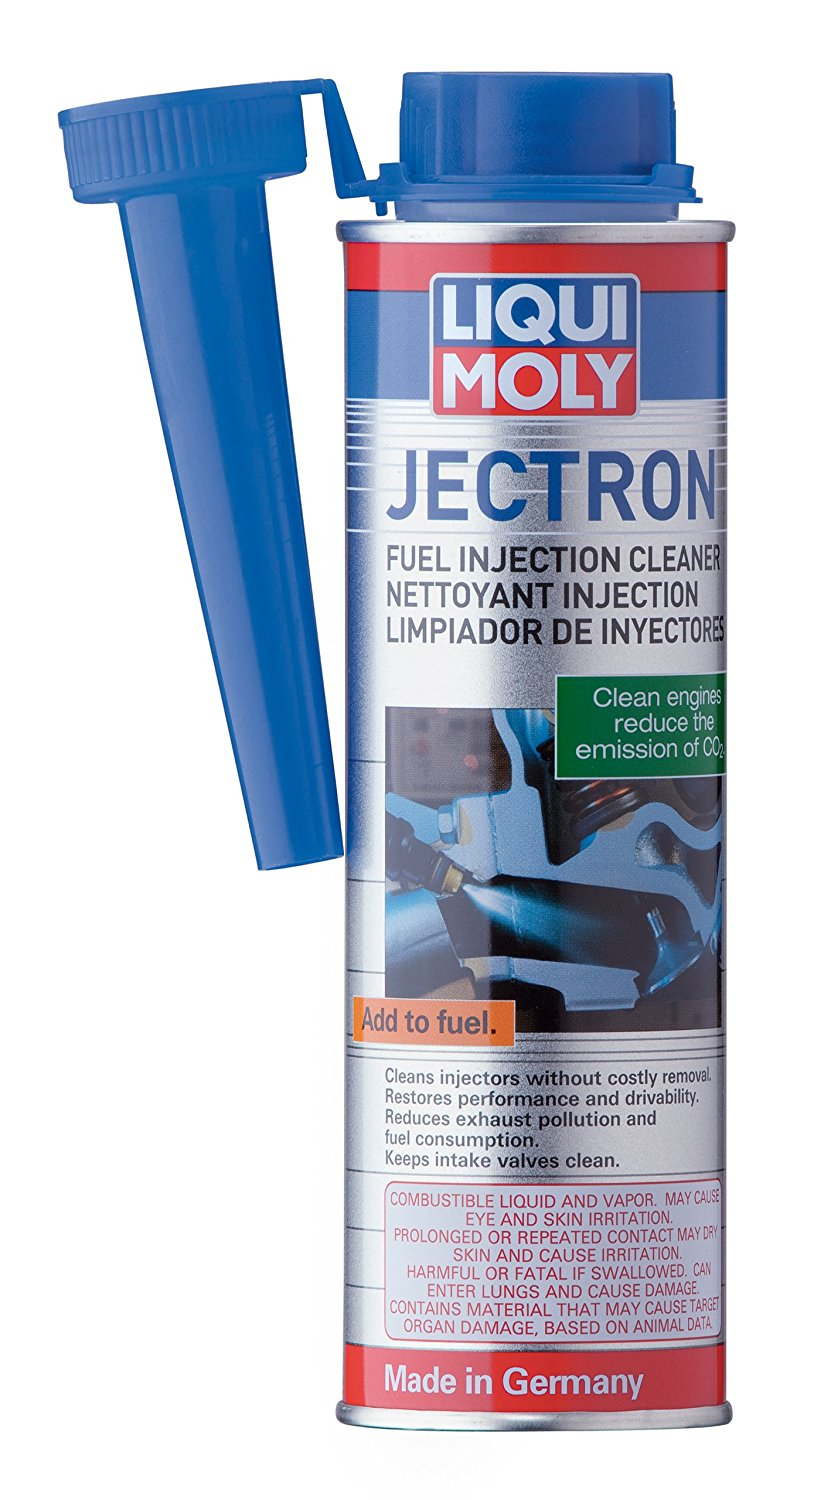 liqui moly 2007 jectron gasoline fuel injection cleaner